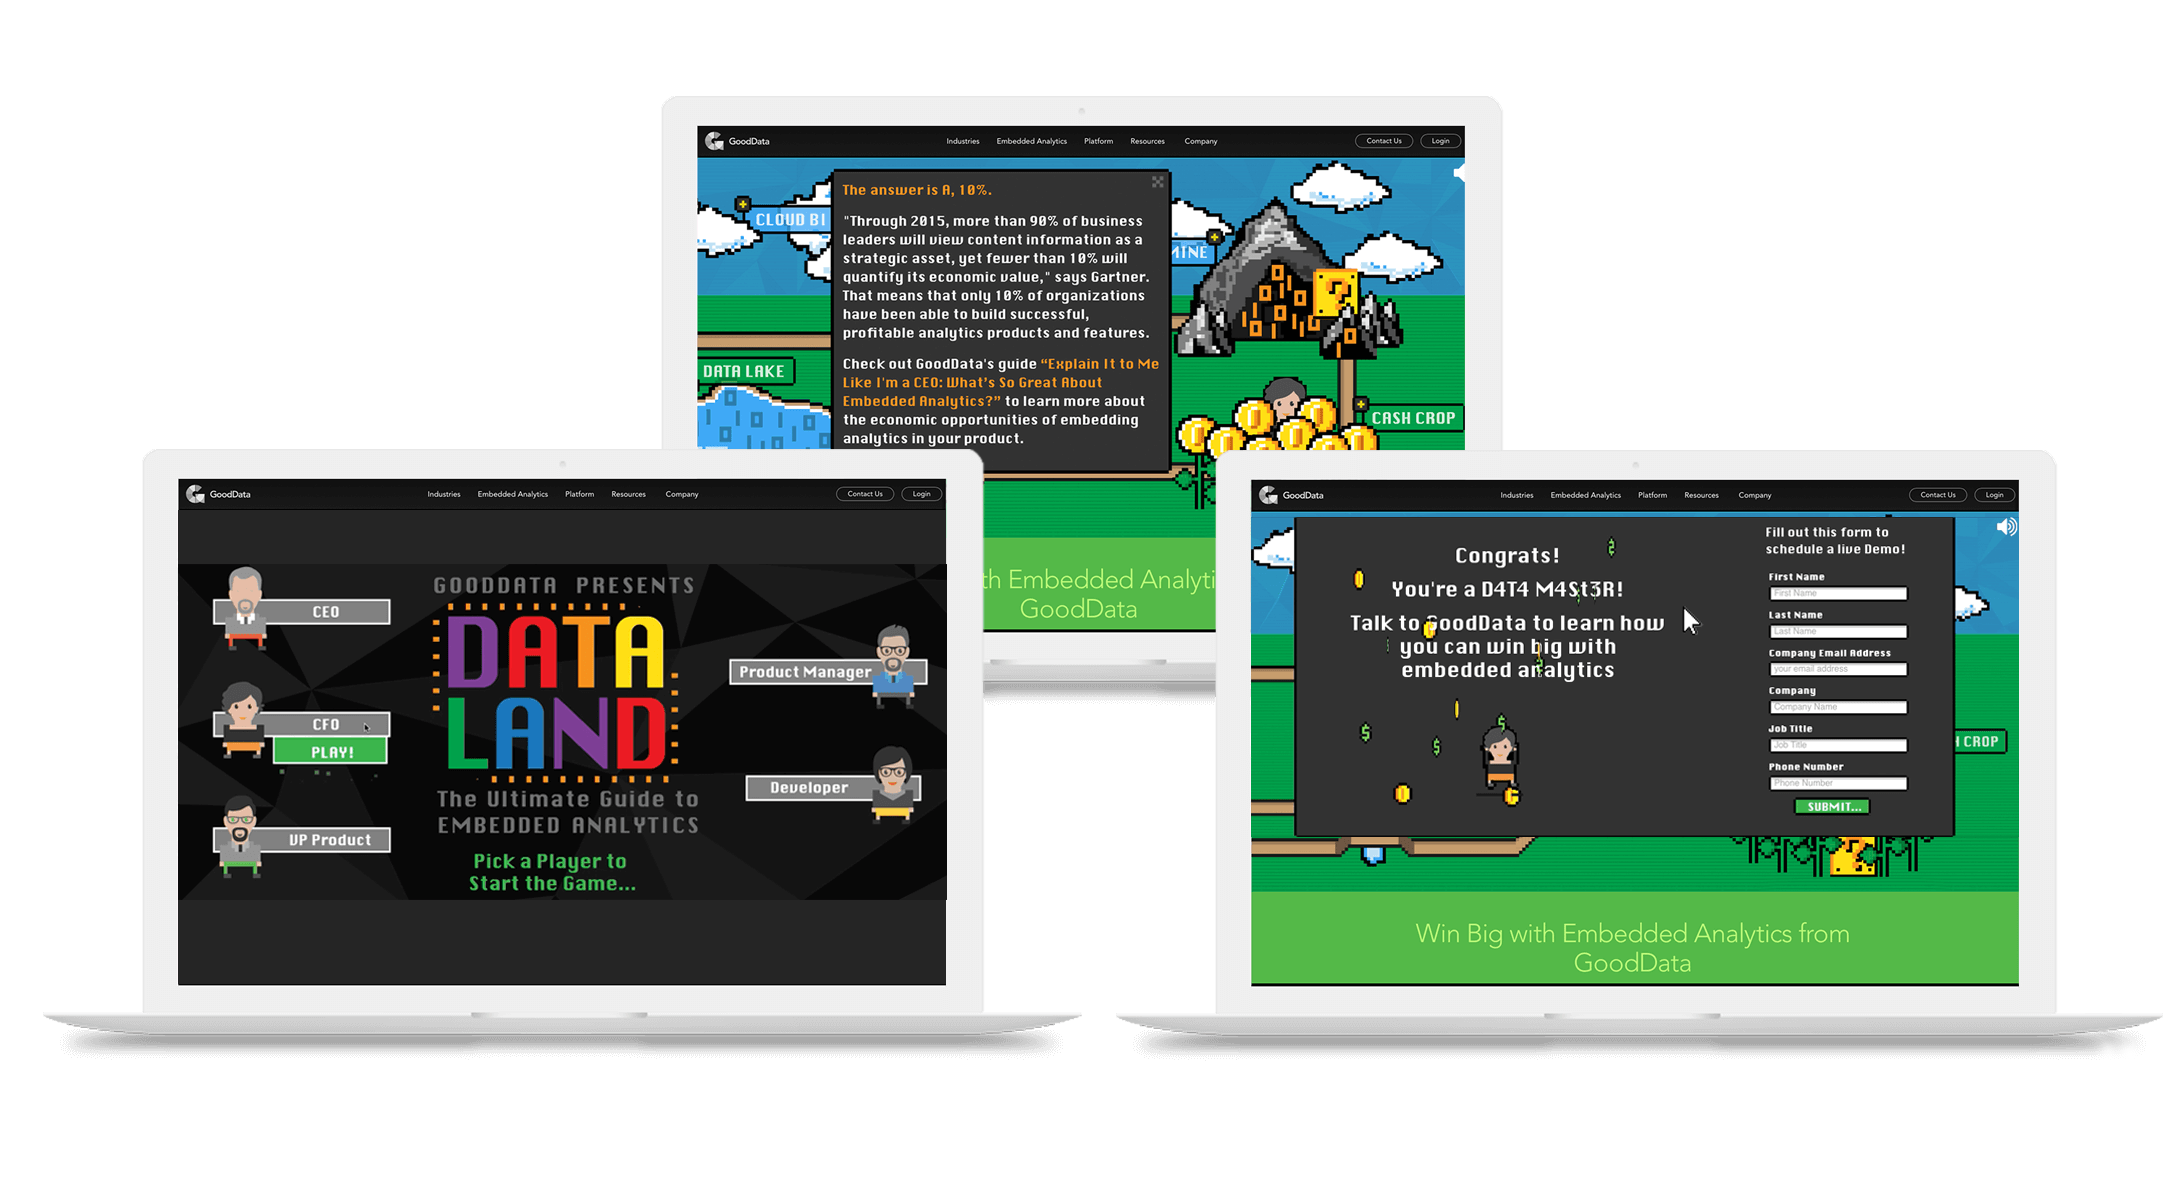 Dataland experience game provided customized data analytics around each of GoodData's defined buyer personas.